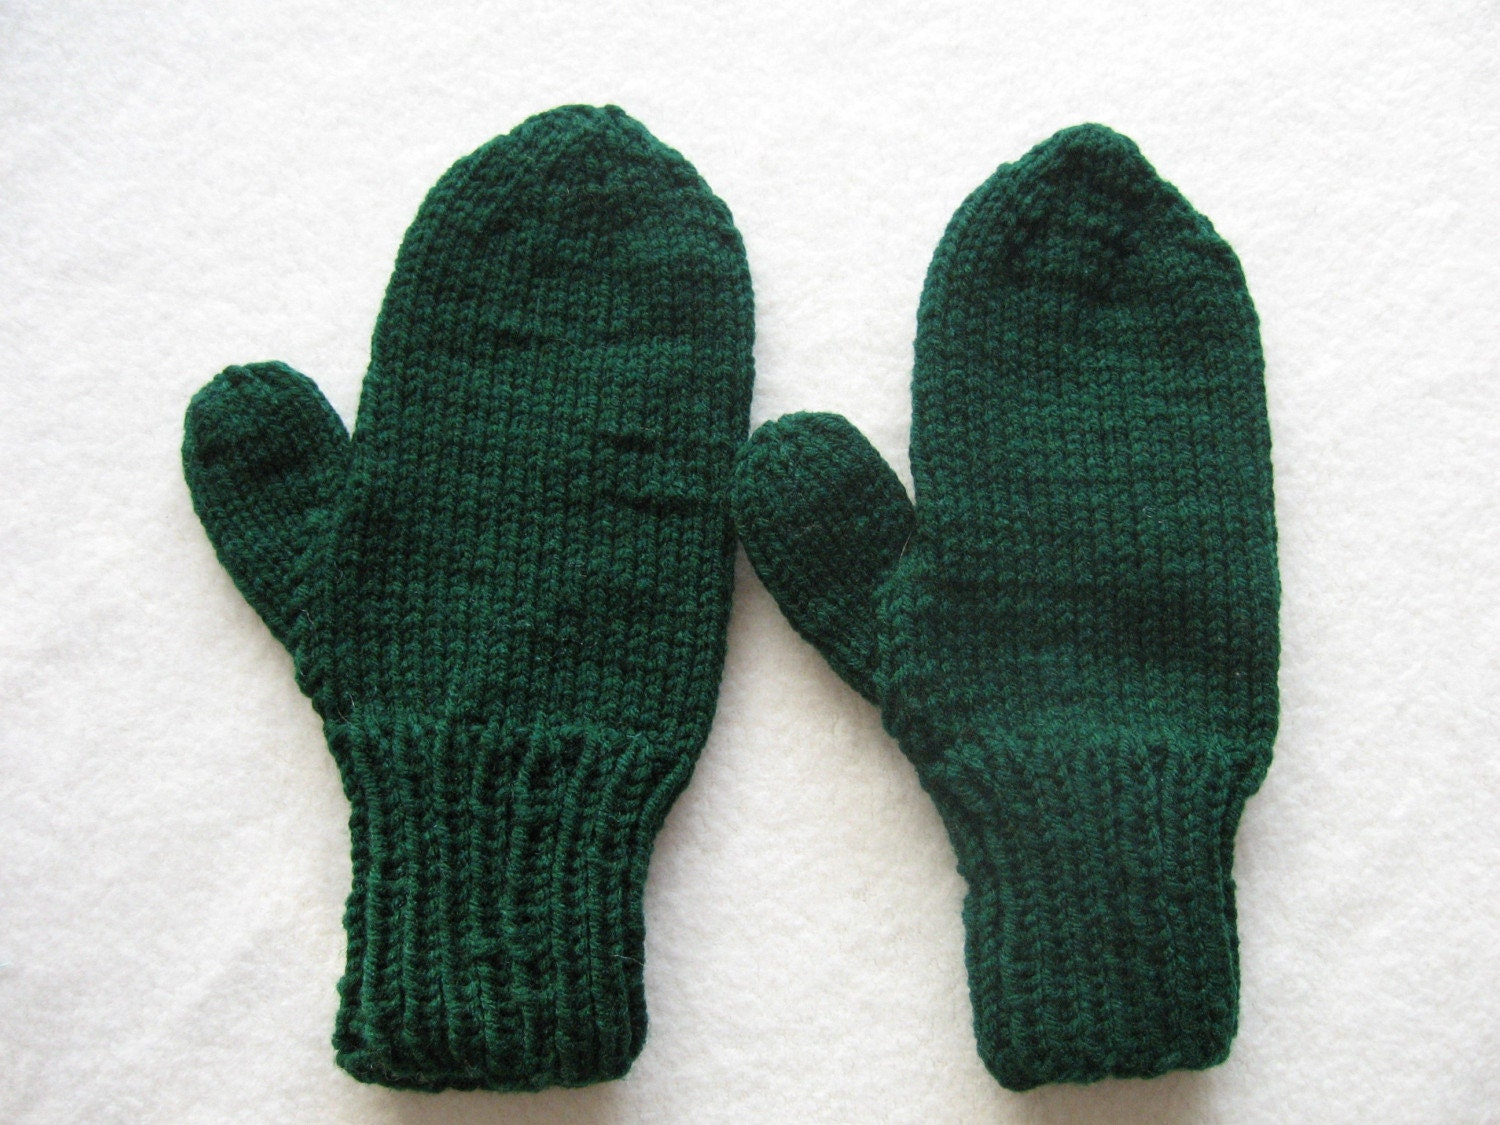 Basic Crocheted Mittens | AllFreeCrochet.com